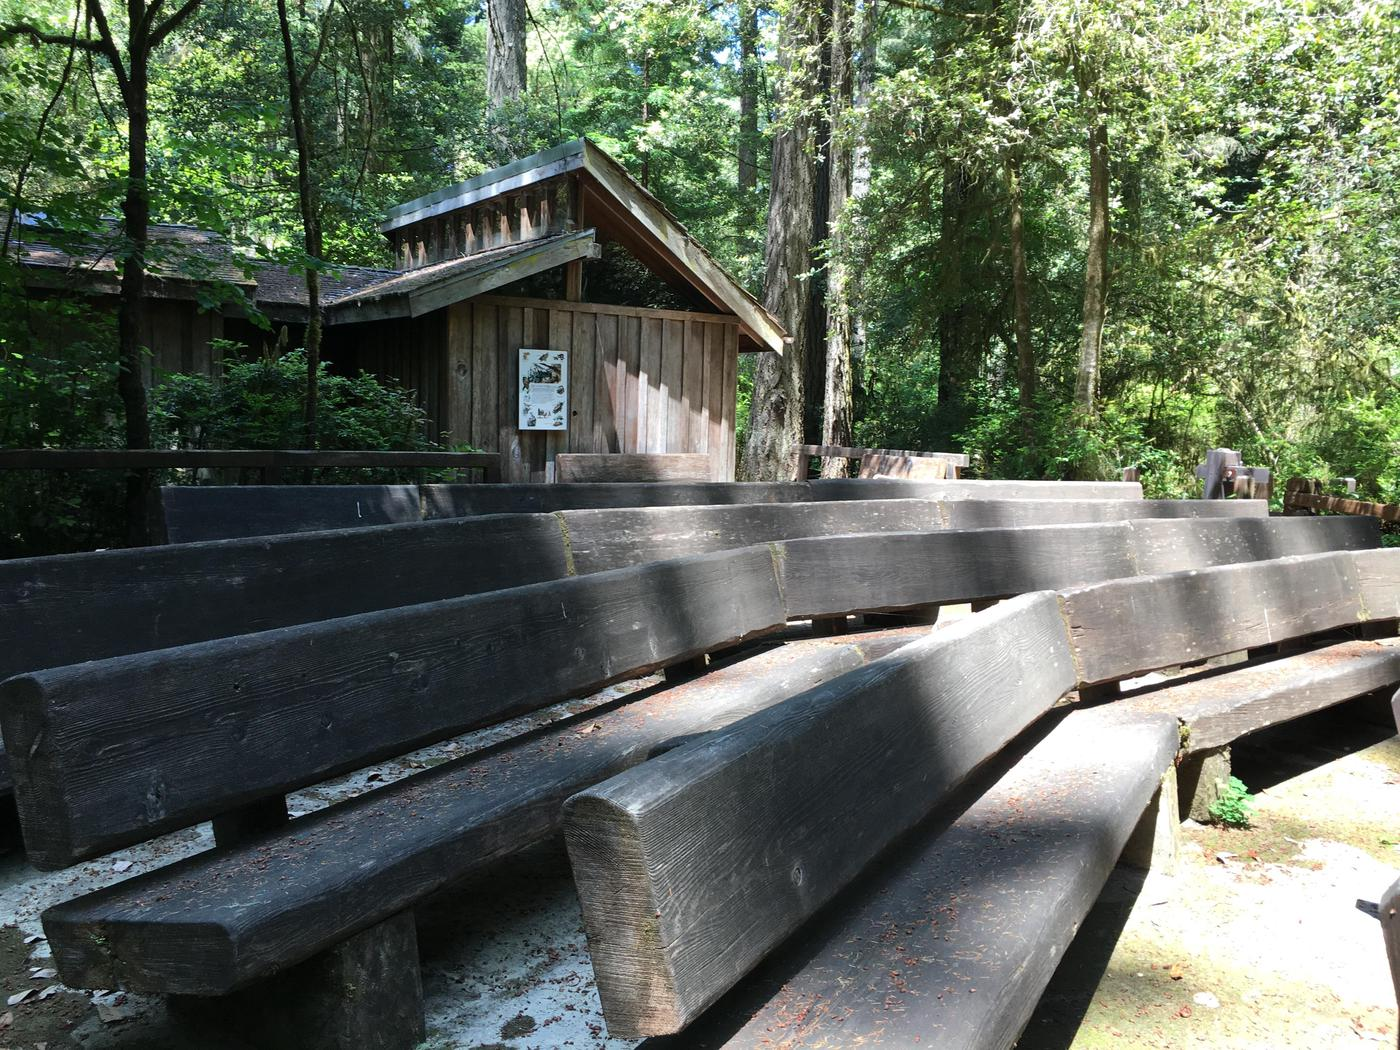 Jedediah Smith Visitor Center and amphitheater.Summer campers and hikers enjoy this quaint location for retail and ranger programs.